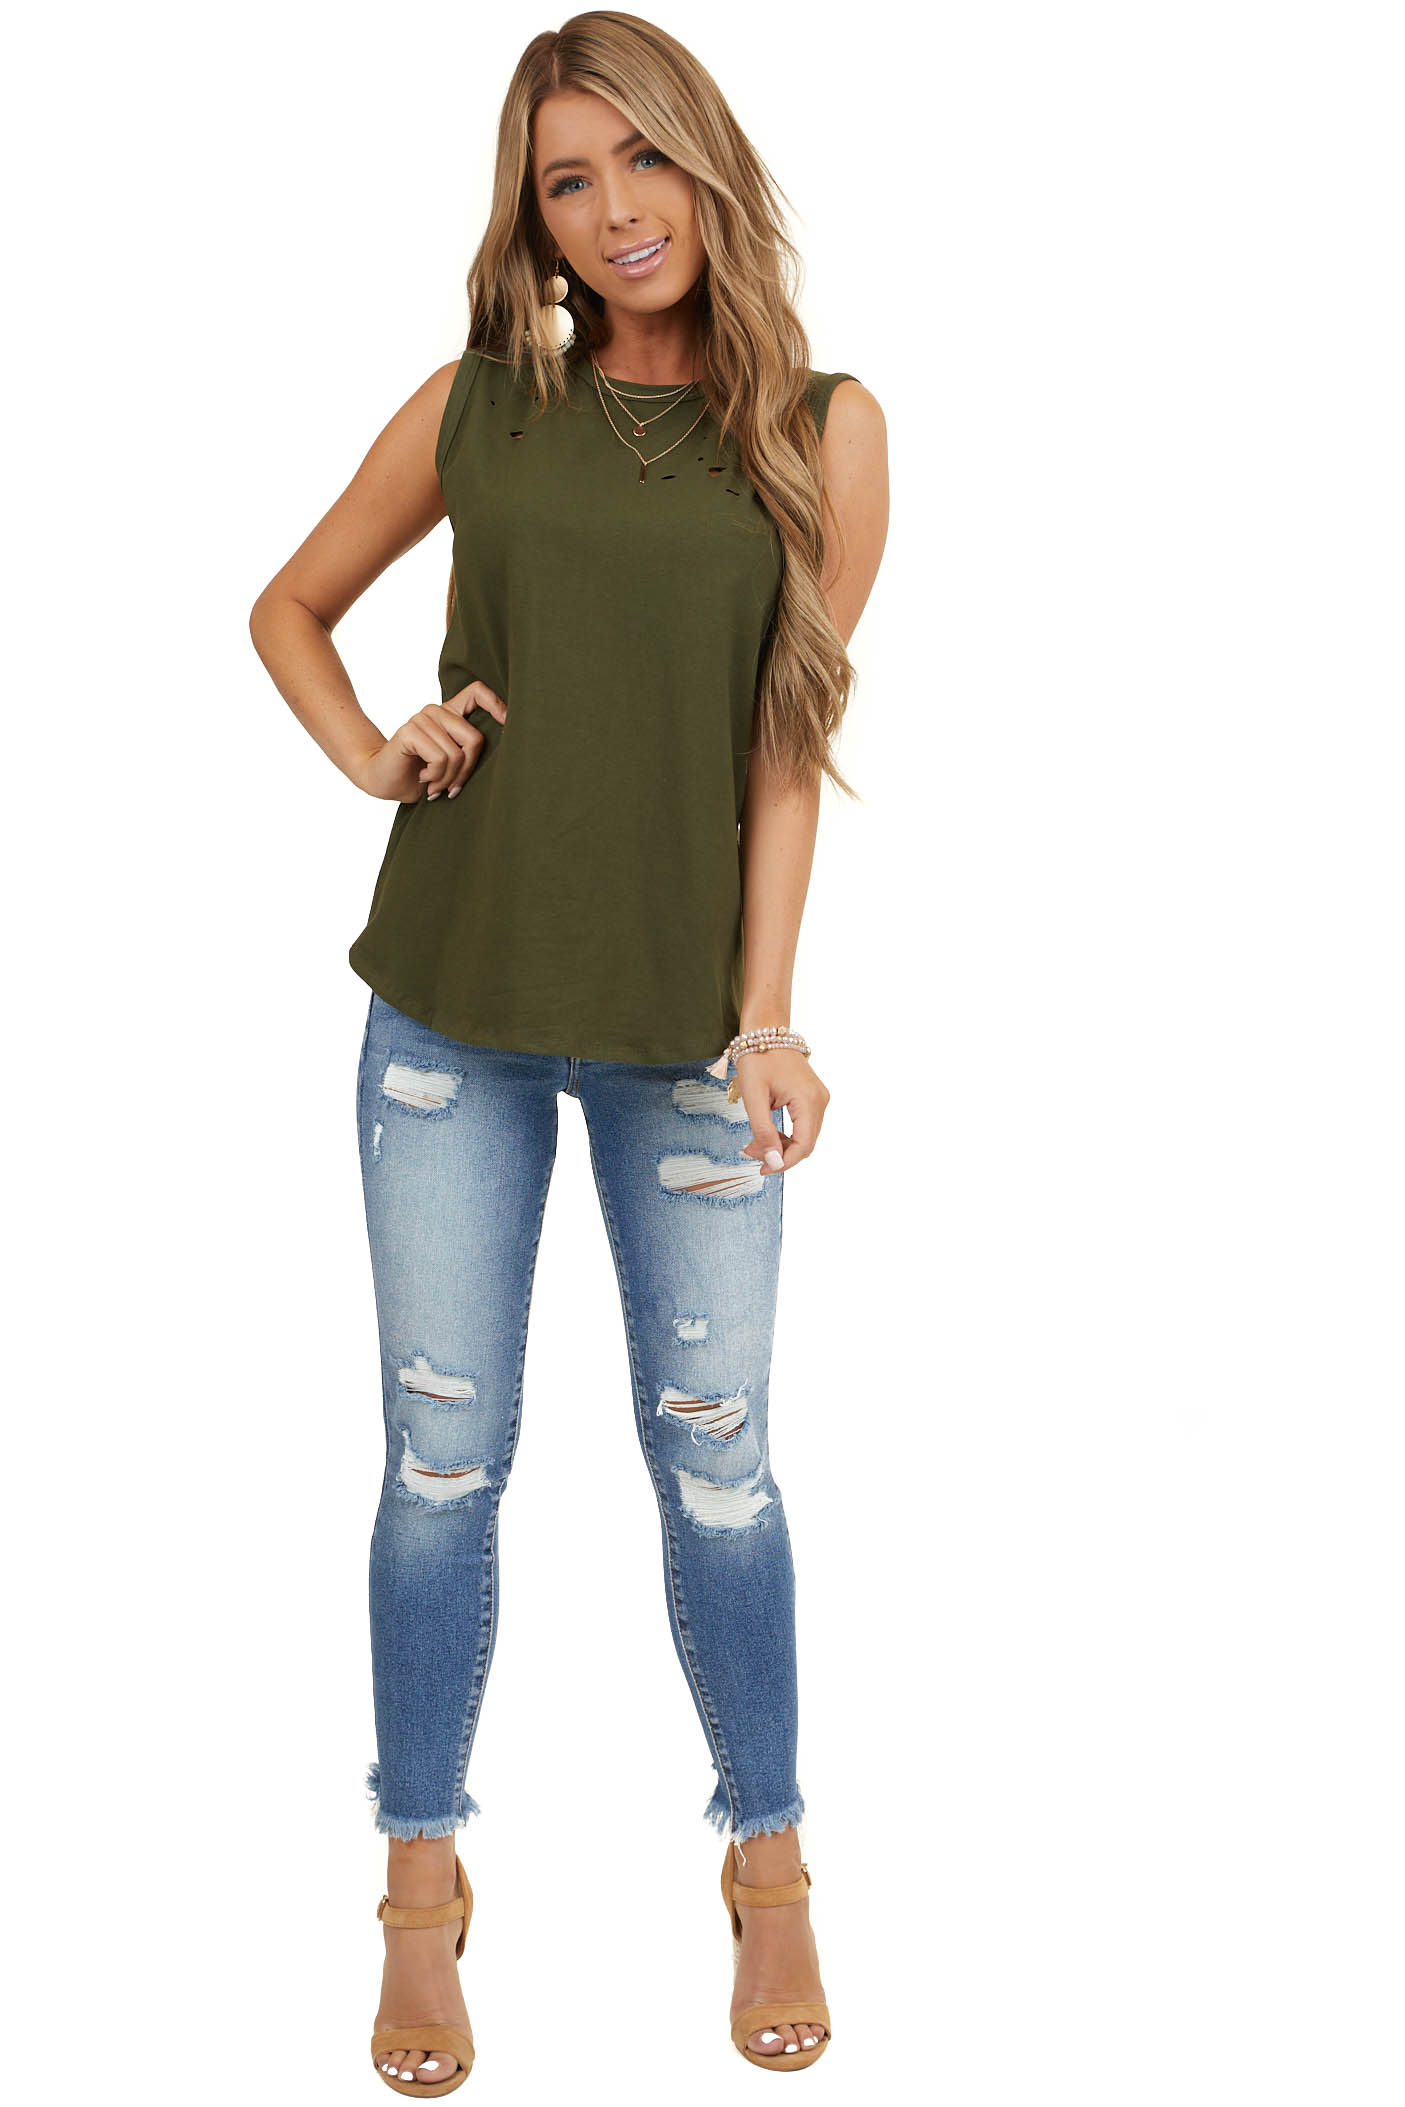 Forest Green Muscle Tank with Laser Cut Hole Details